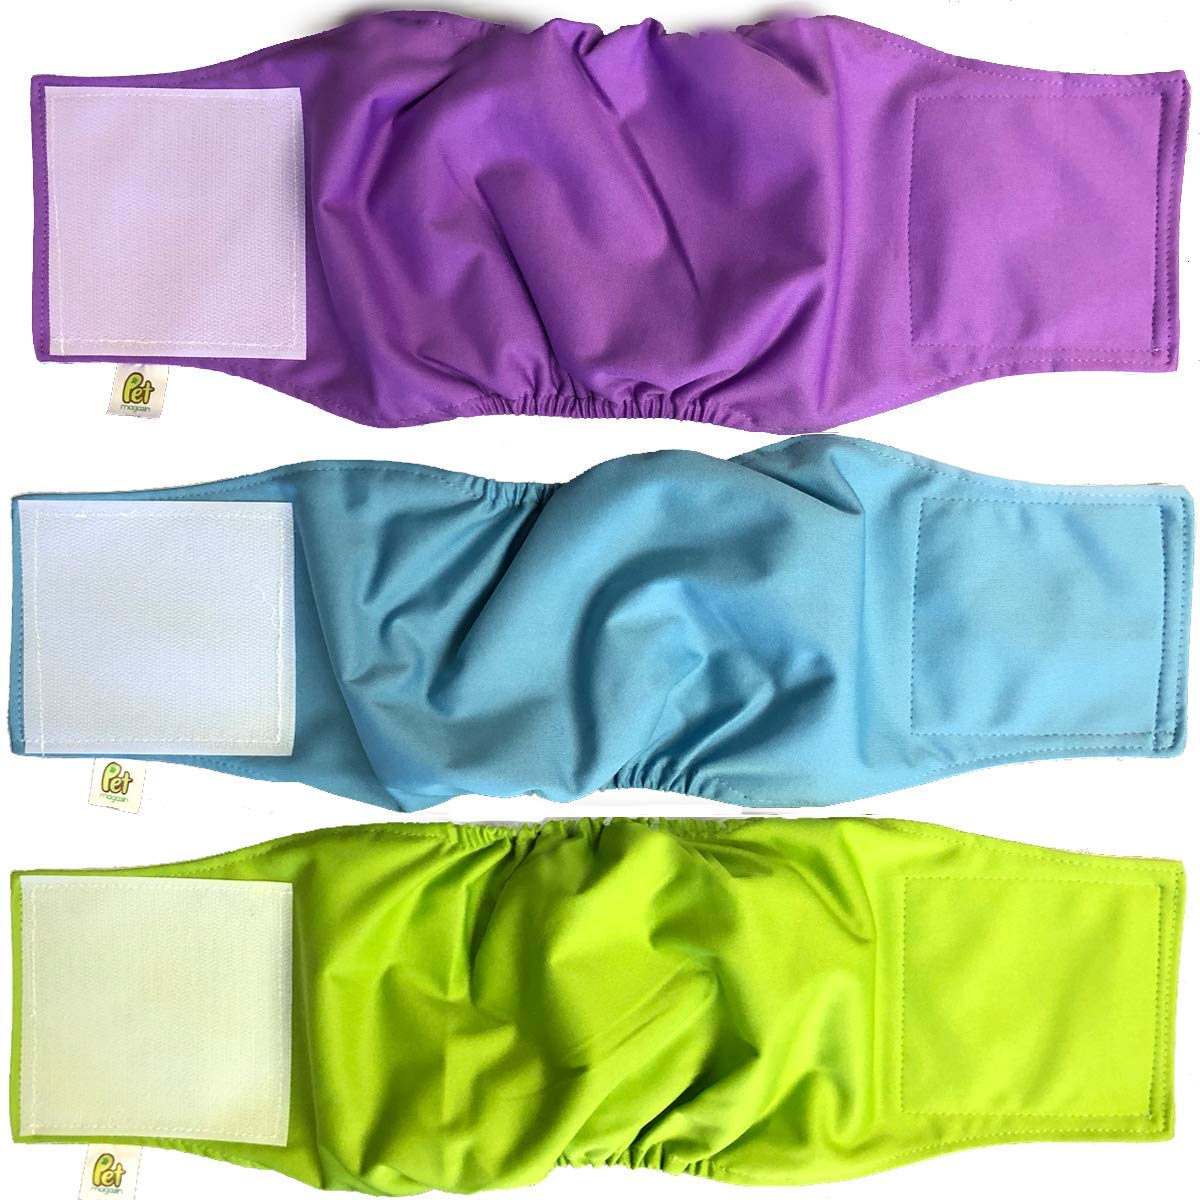 Pet Magasin Luxury Dog Belly Band Wraps Extra Comfort (3-Pack) - Large Washable & Reusable Pet Belly Nappies Diapers for Male Dogs, Cats or Other Small Animals